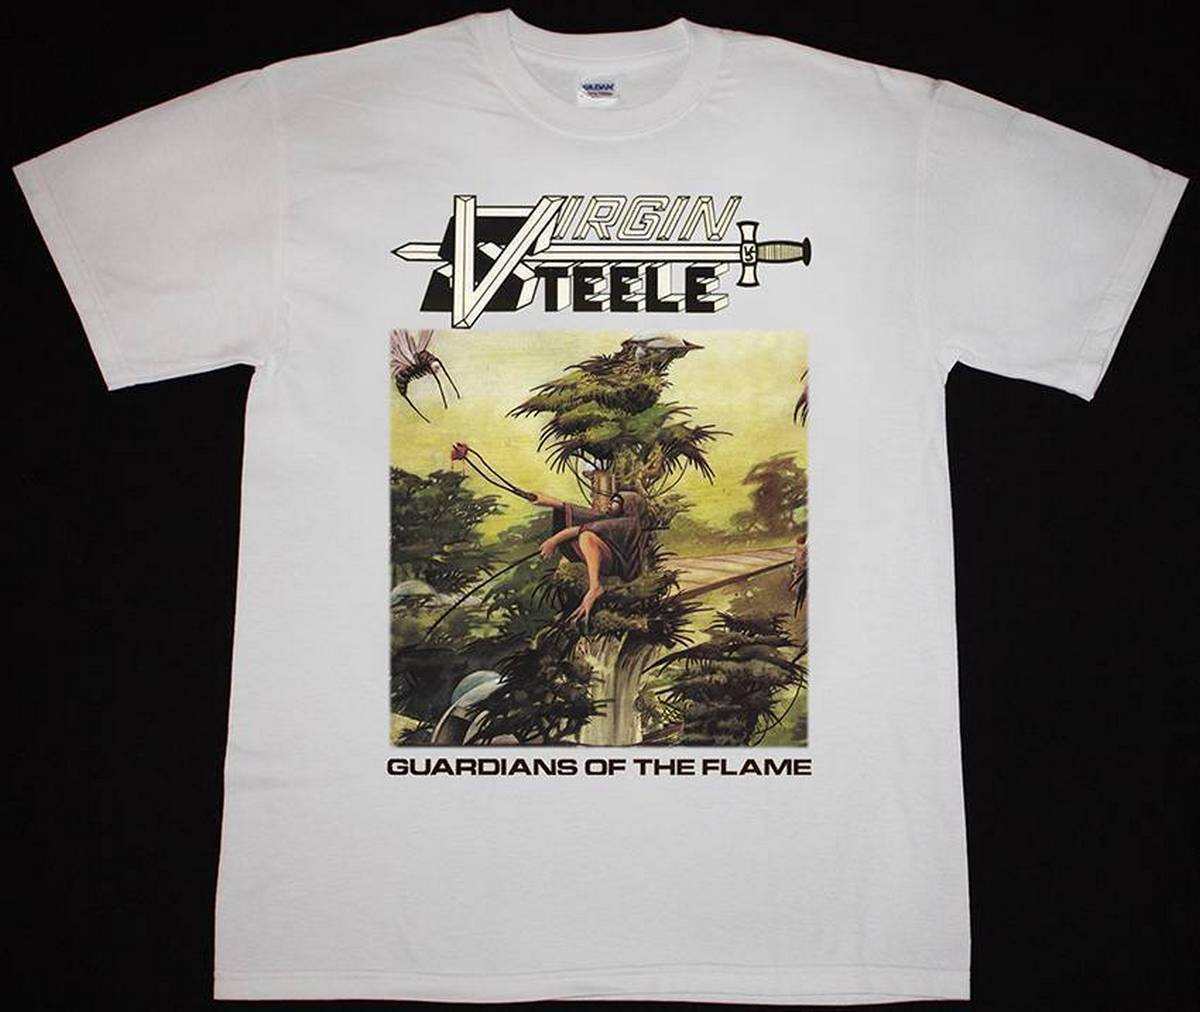 VIRGIN STEELE GUARDIANS OF THE FLAME HEAVY POWER METAL OMEN NEW WHITE T-SHIRT Men Brand Printed 100% Cotton T Shirt